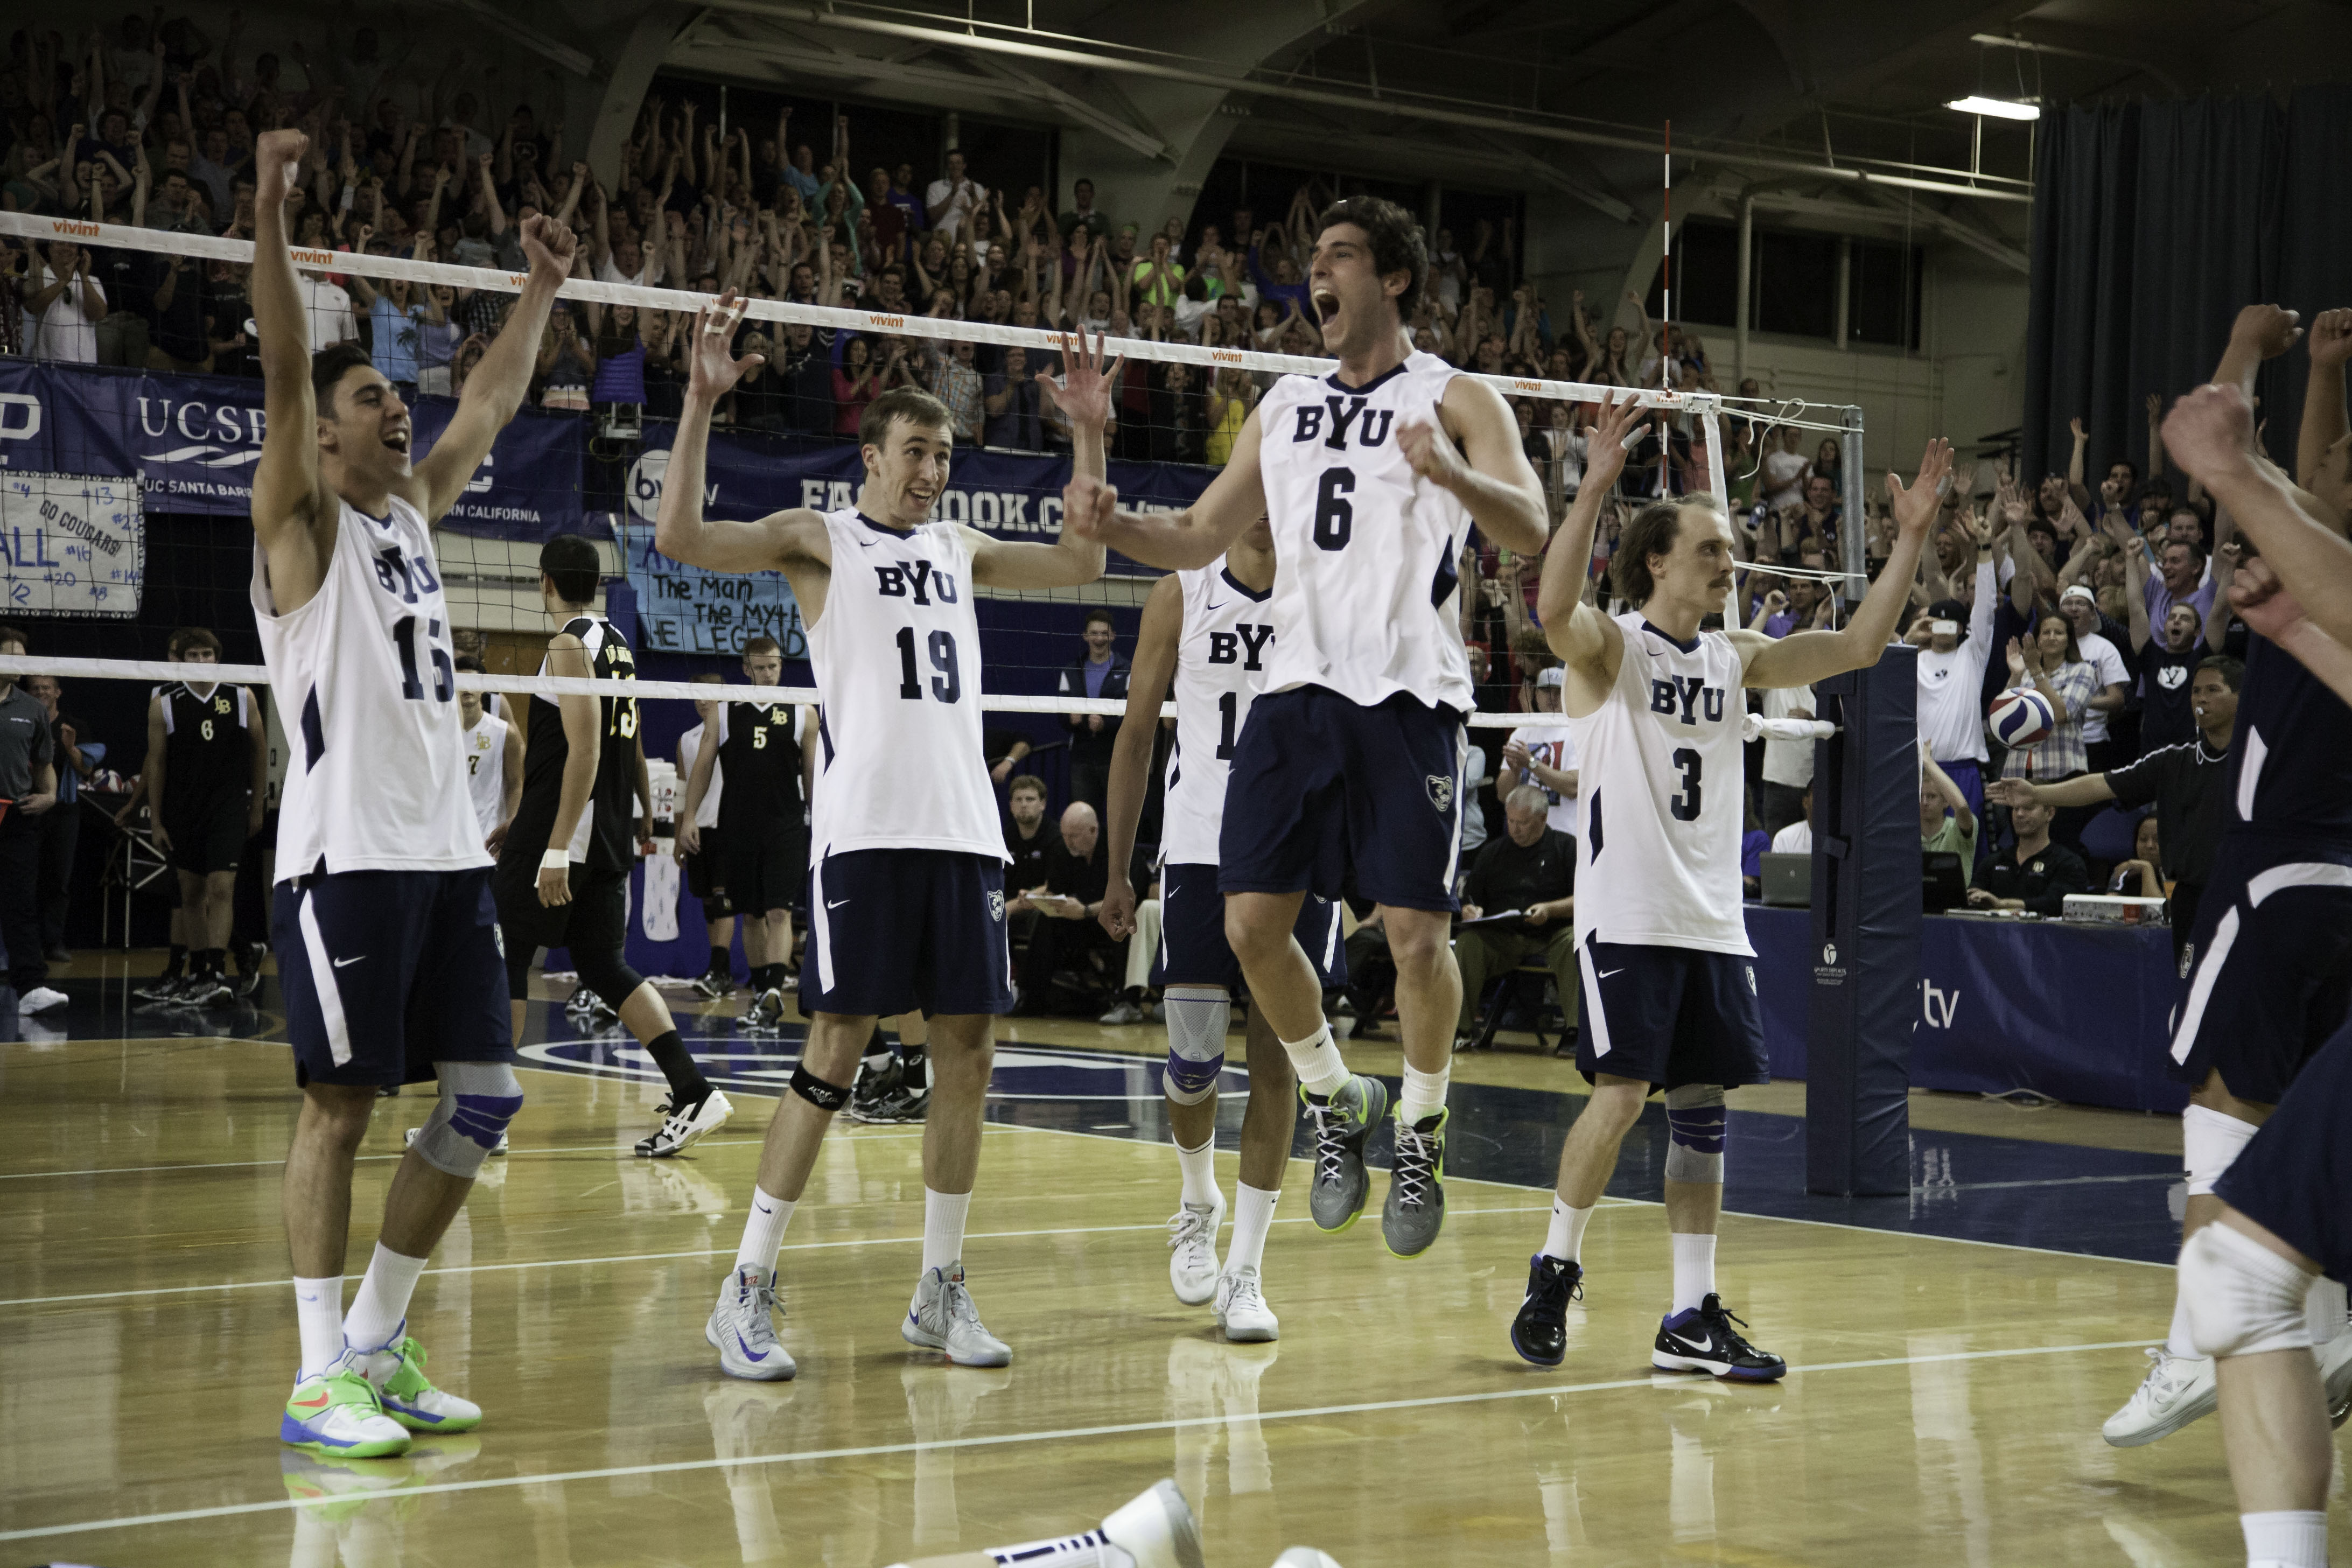 The BYU volleyball team celebrates after winning the final point to clinch the 2013 MPSF Championship title. The team progressed all the way through the NCAA Tournament, making it to the NCAA Championship game, where it fell to UC-Irvine. (Photo by Elliott Miller)